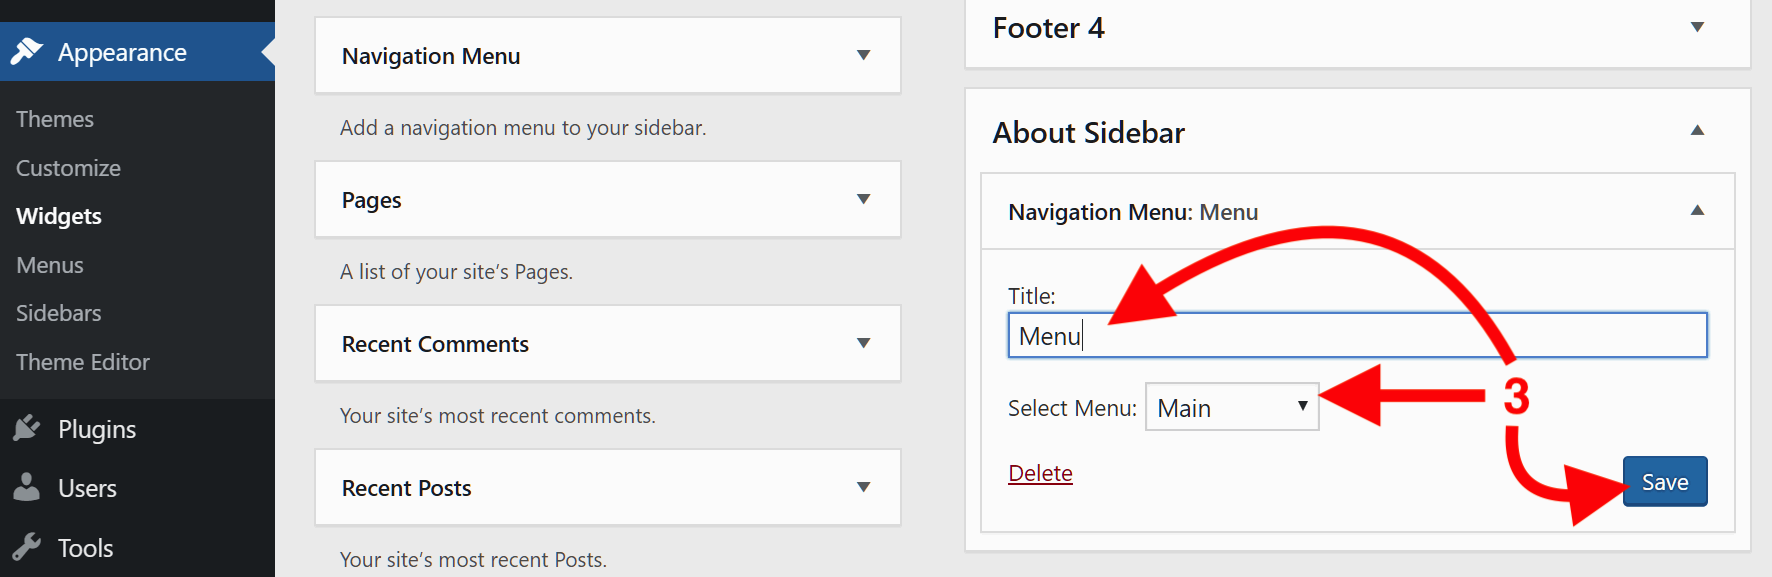 Assign to About Sidebar